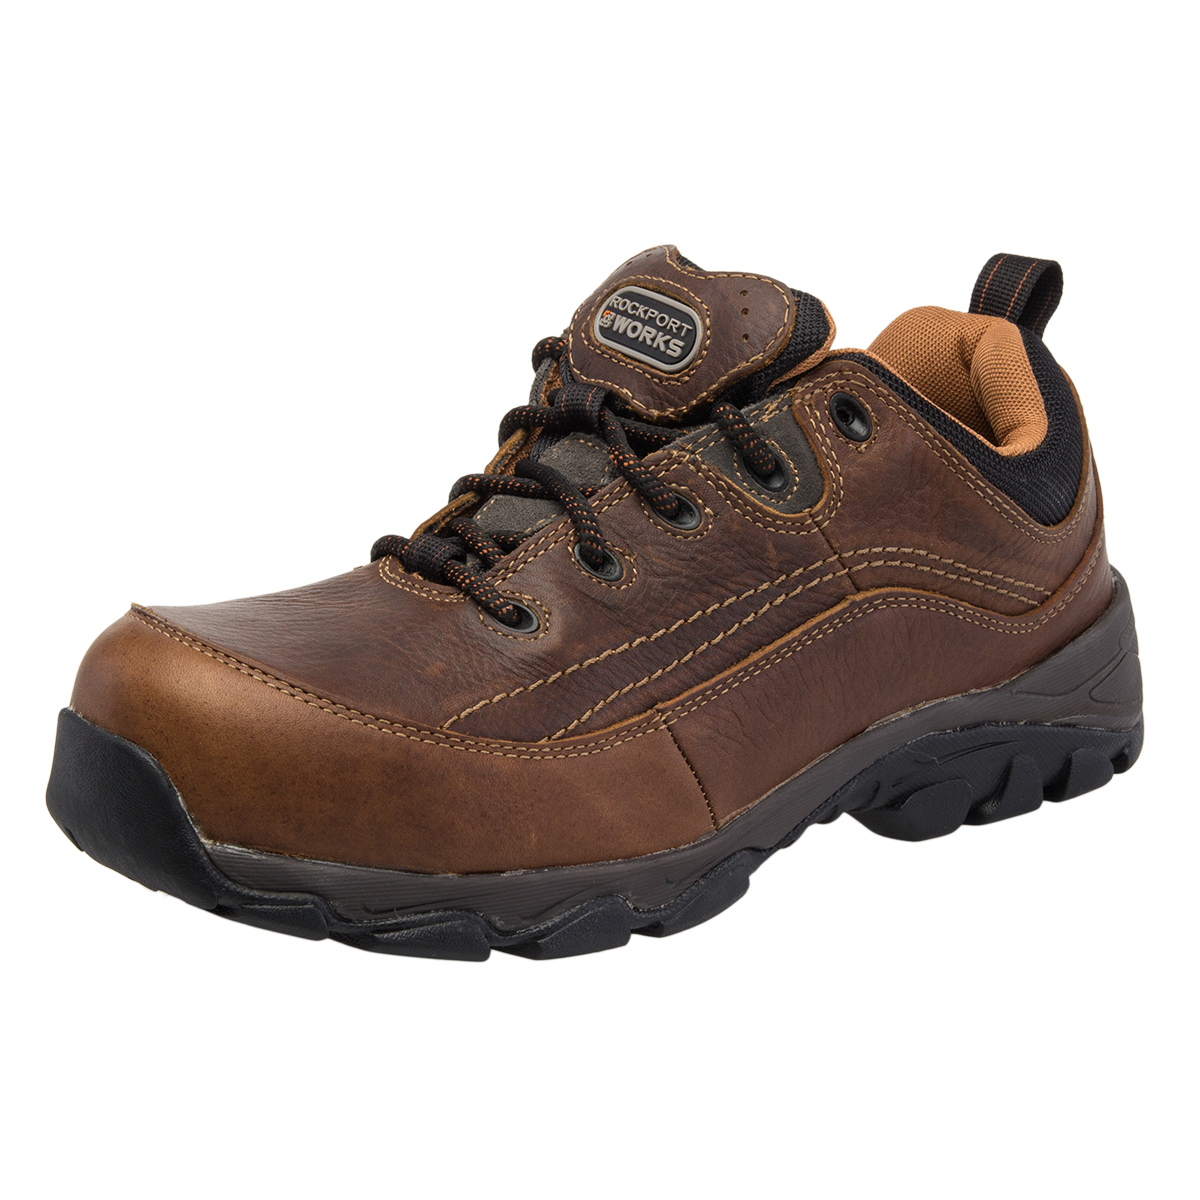 Rockport Men�s Oxford Work Shoes Composite Toe Construction Comfort Waterproof by